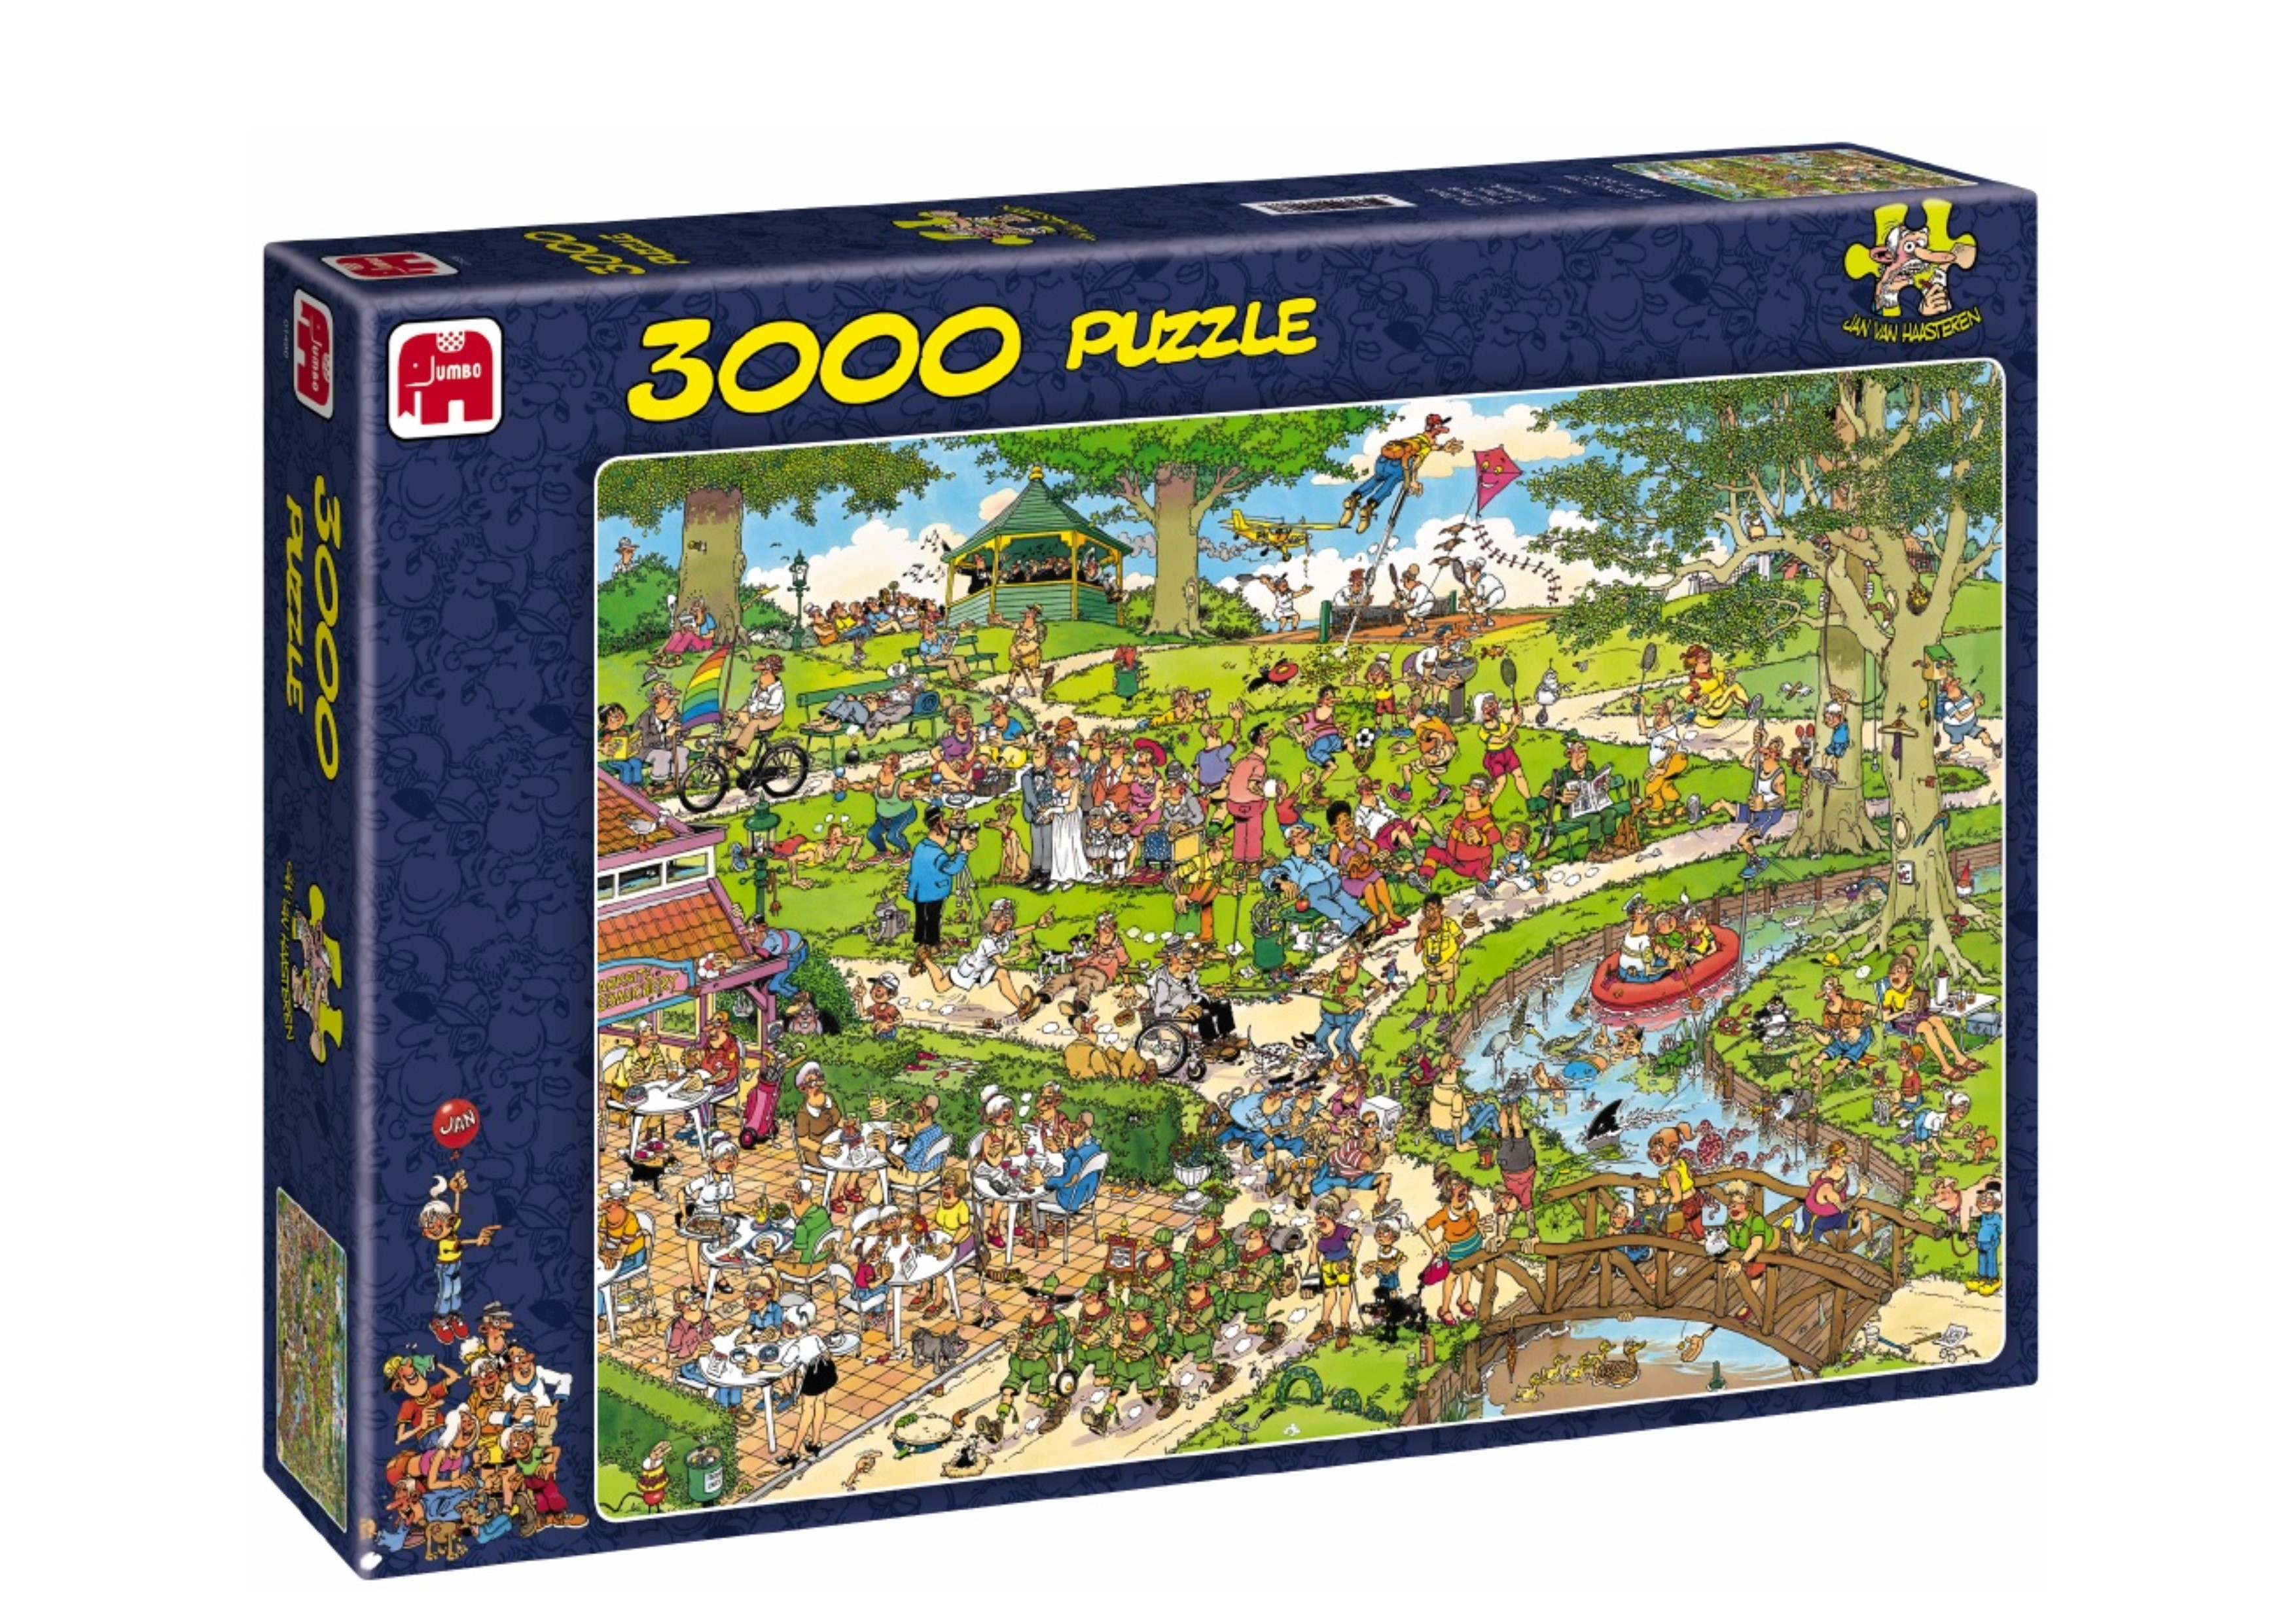 Jigsaw Puzzles For All Ages